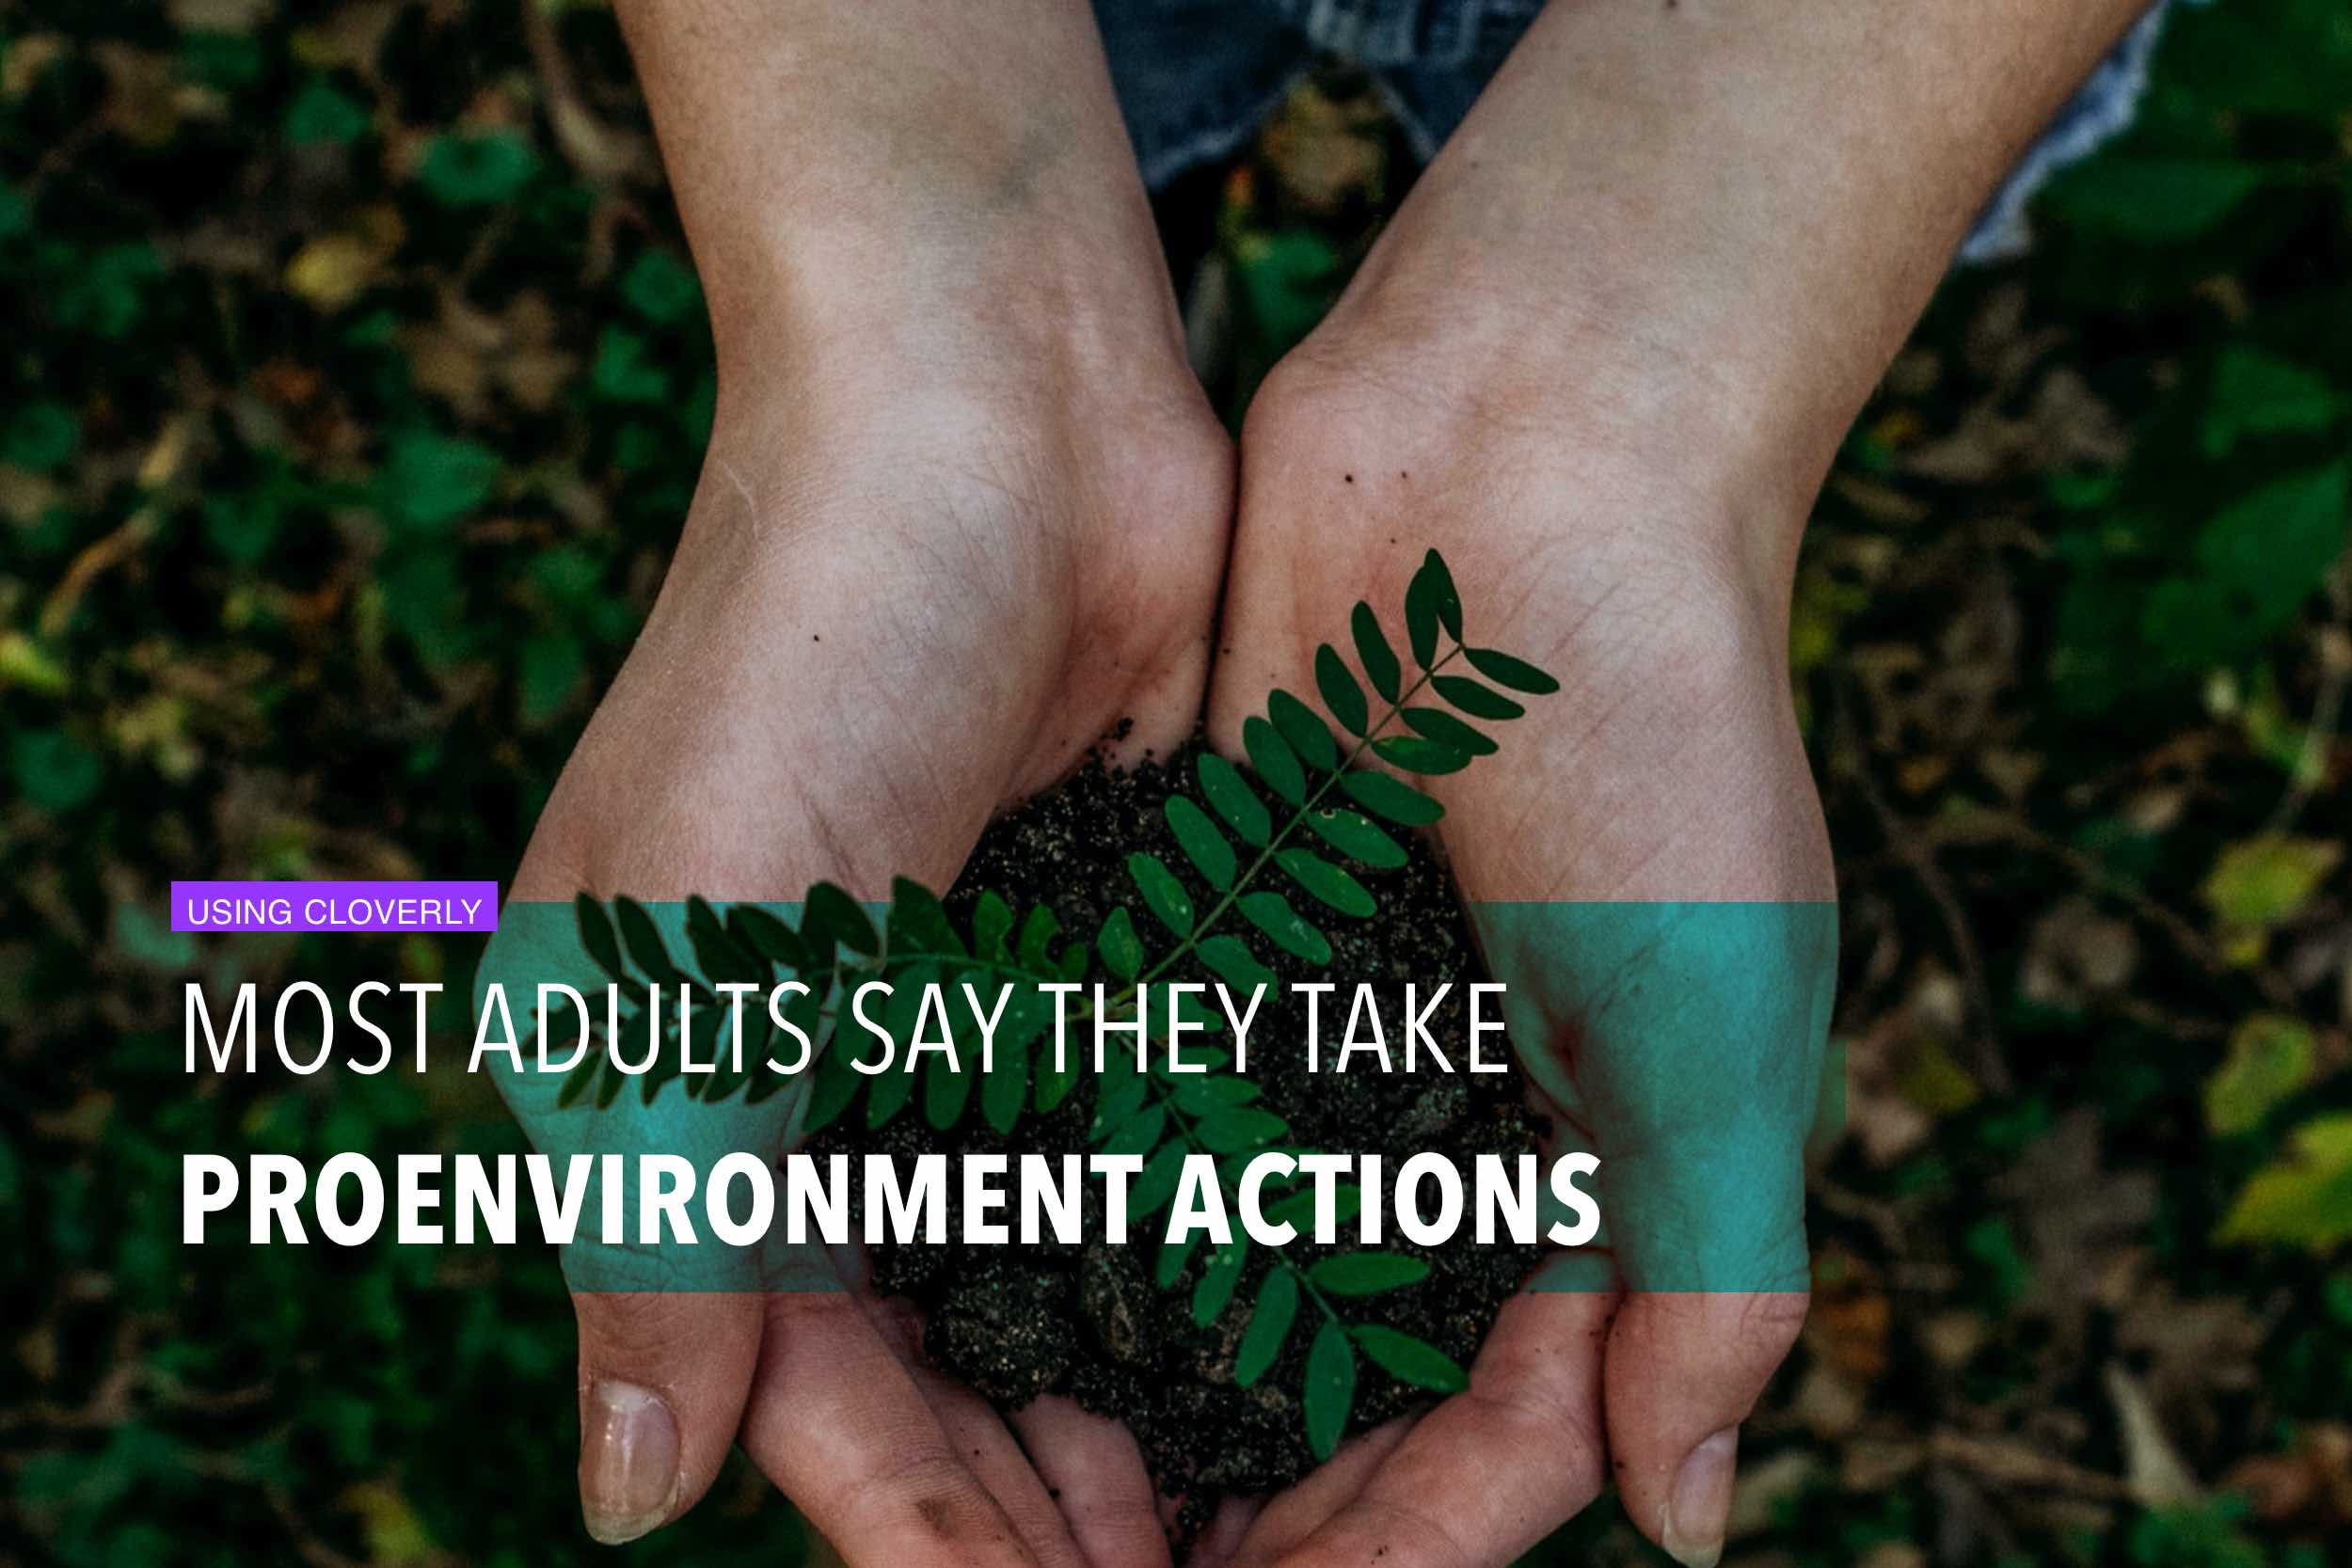 Most adults say they take proenvironment actions